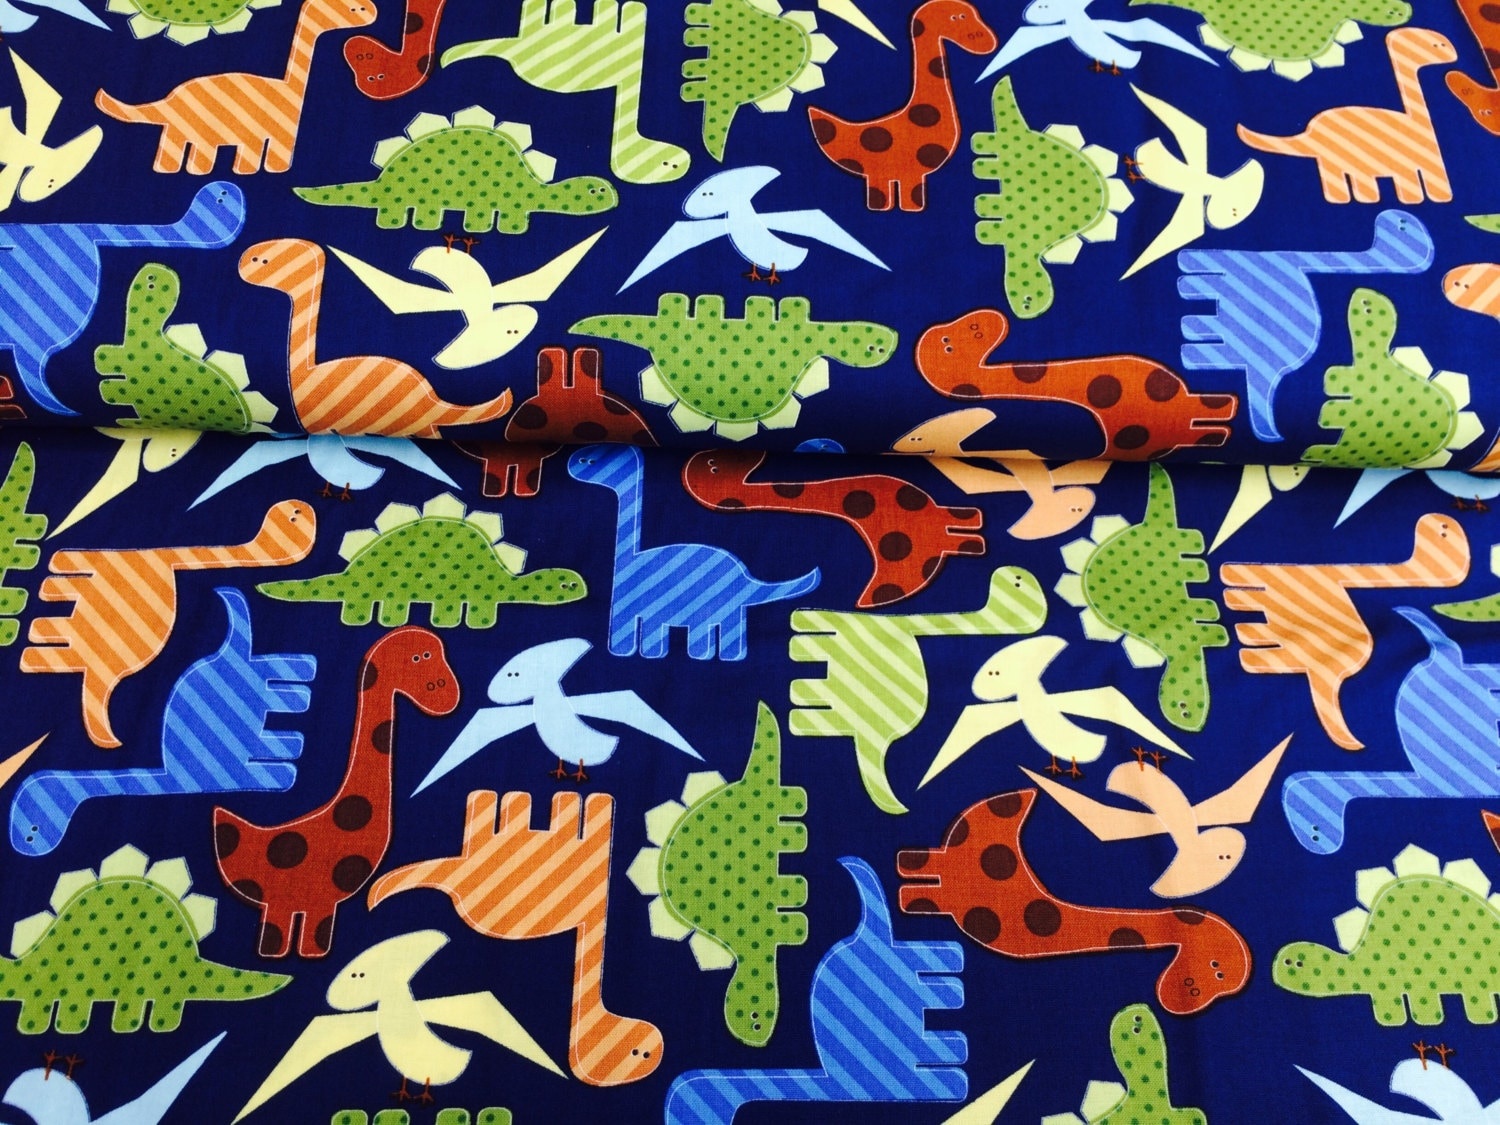 Dinosaur fabric by robert kaufman 100 cotton uk sales only for Dinosaur fabric